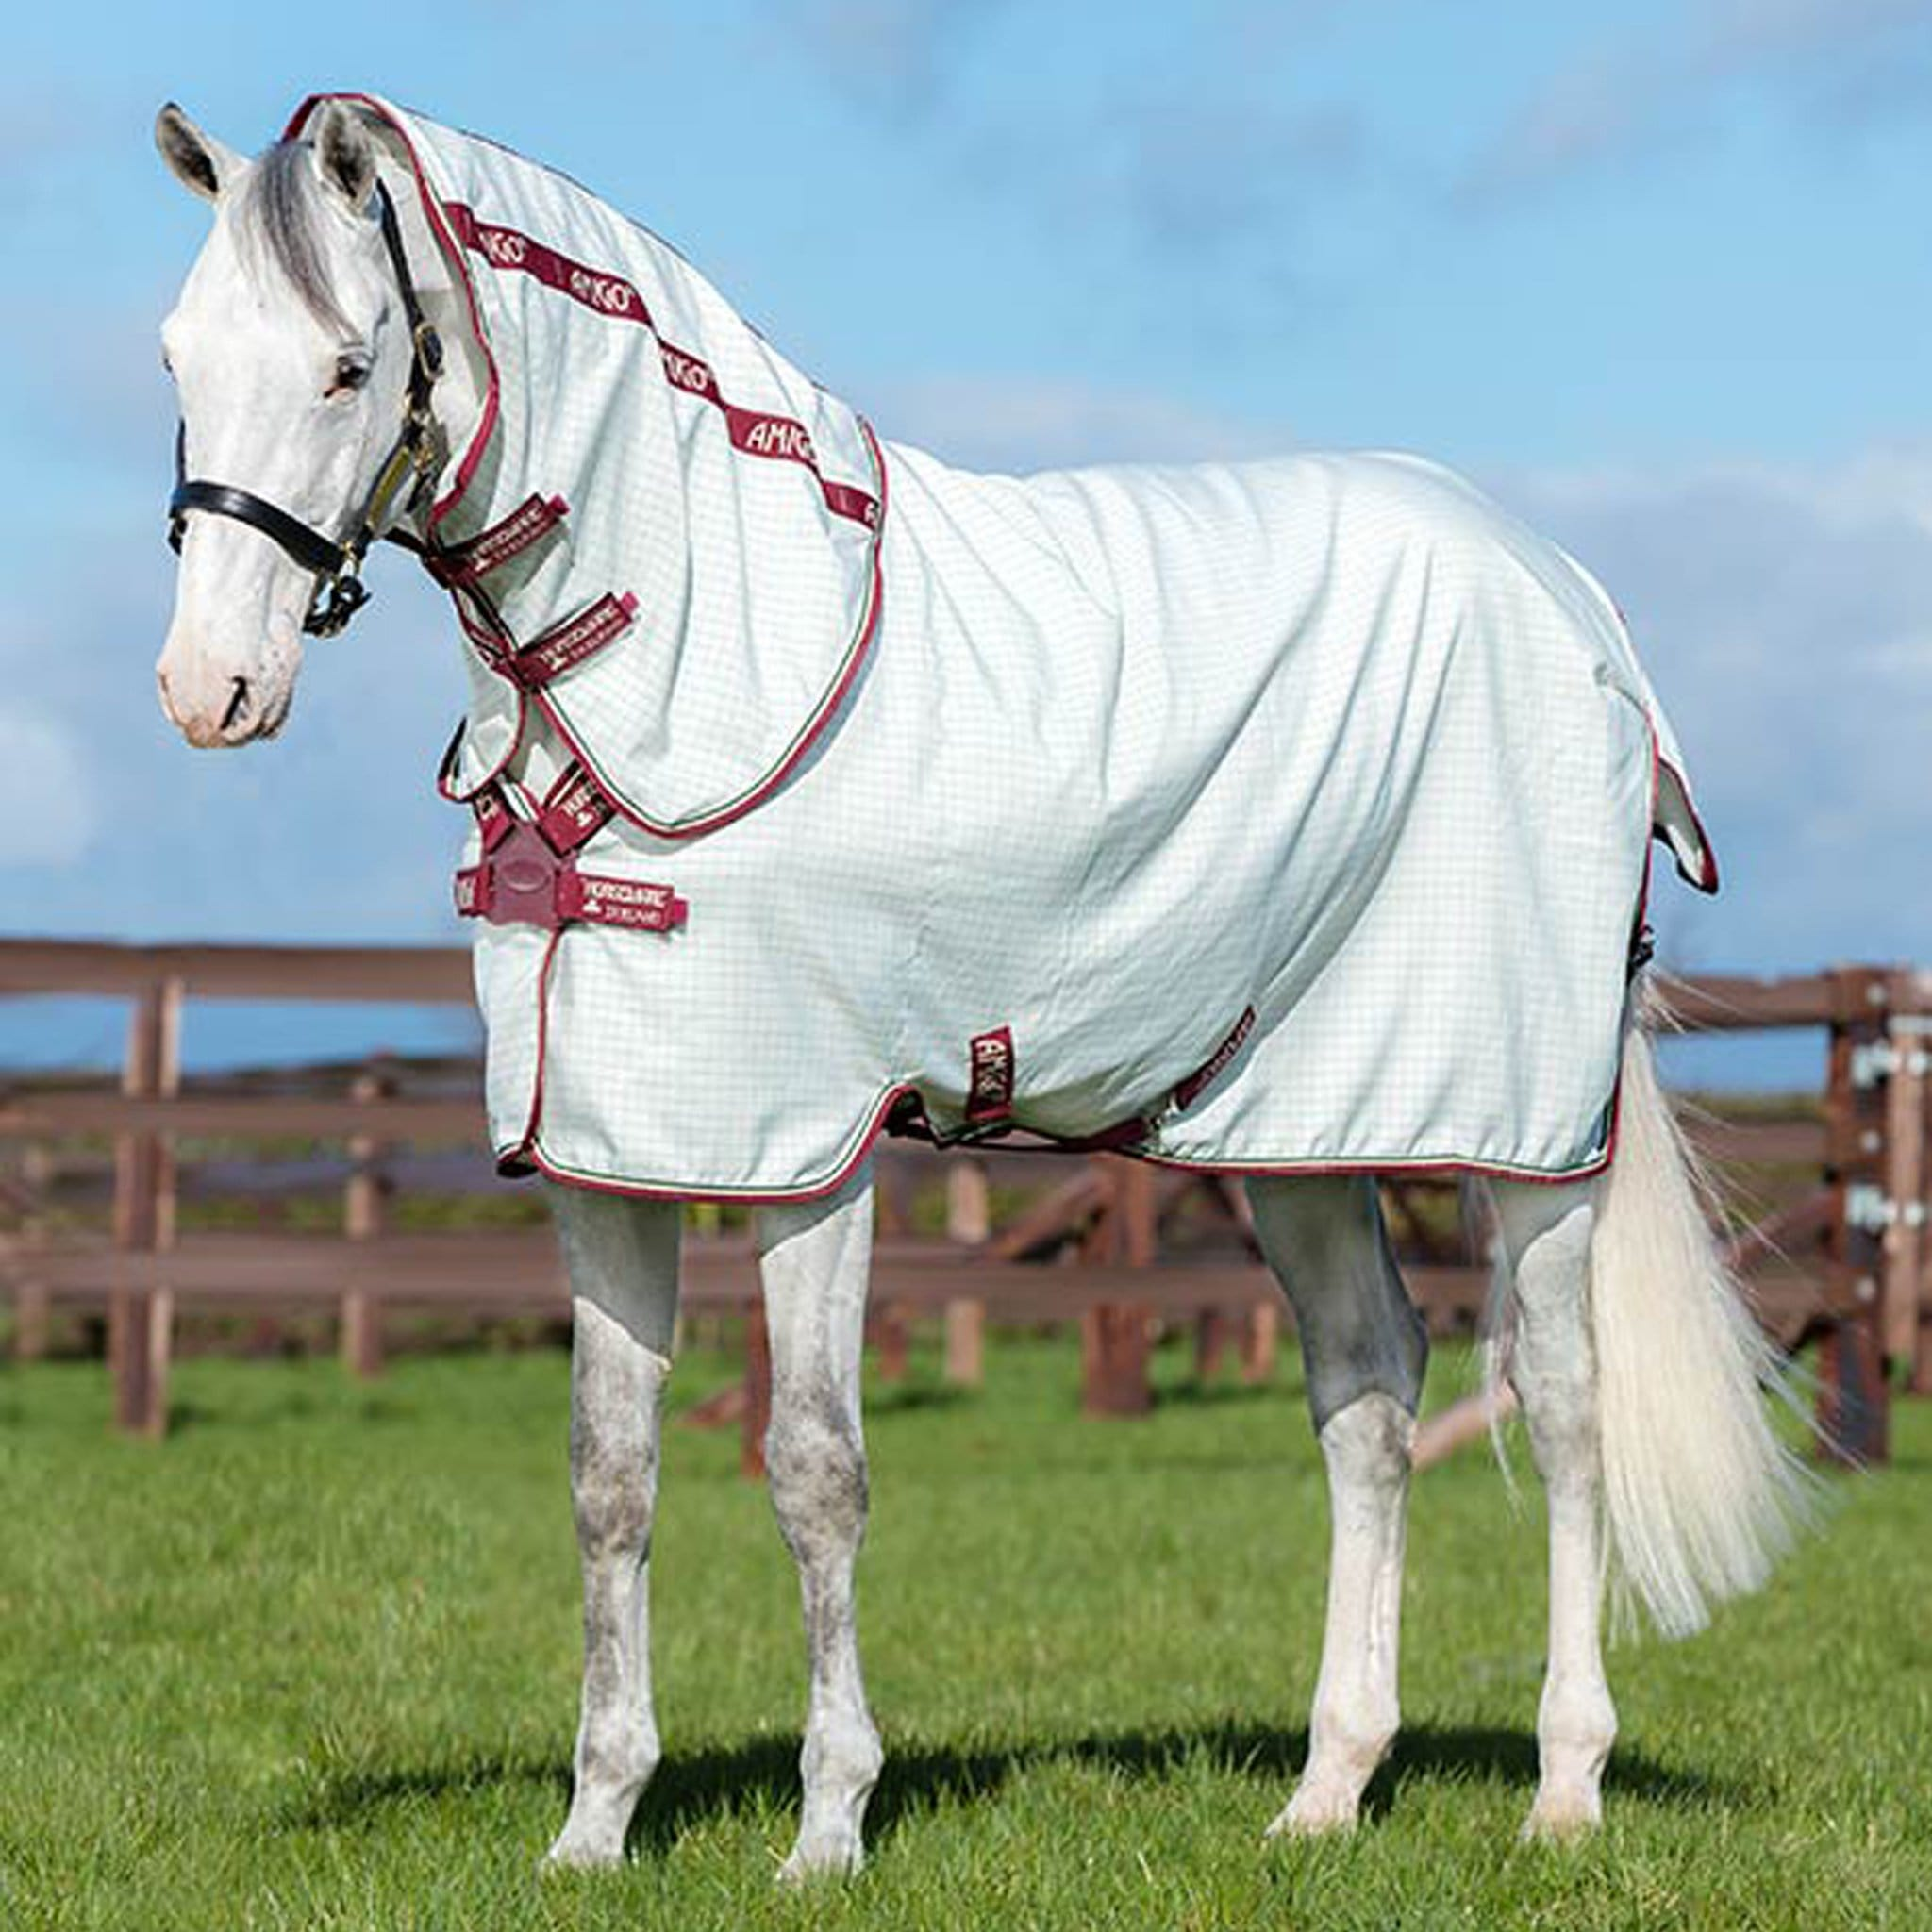 Amigo Aussie All Rounder Combo Fly Rug AFRP40 White and Burgundy